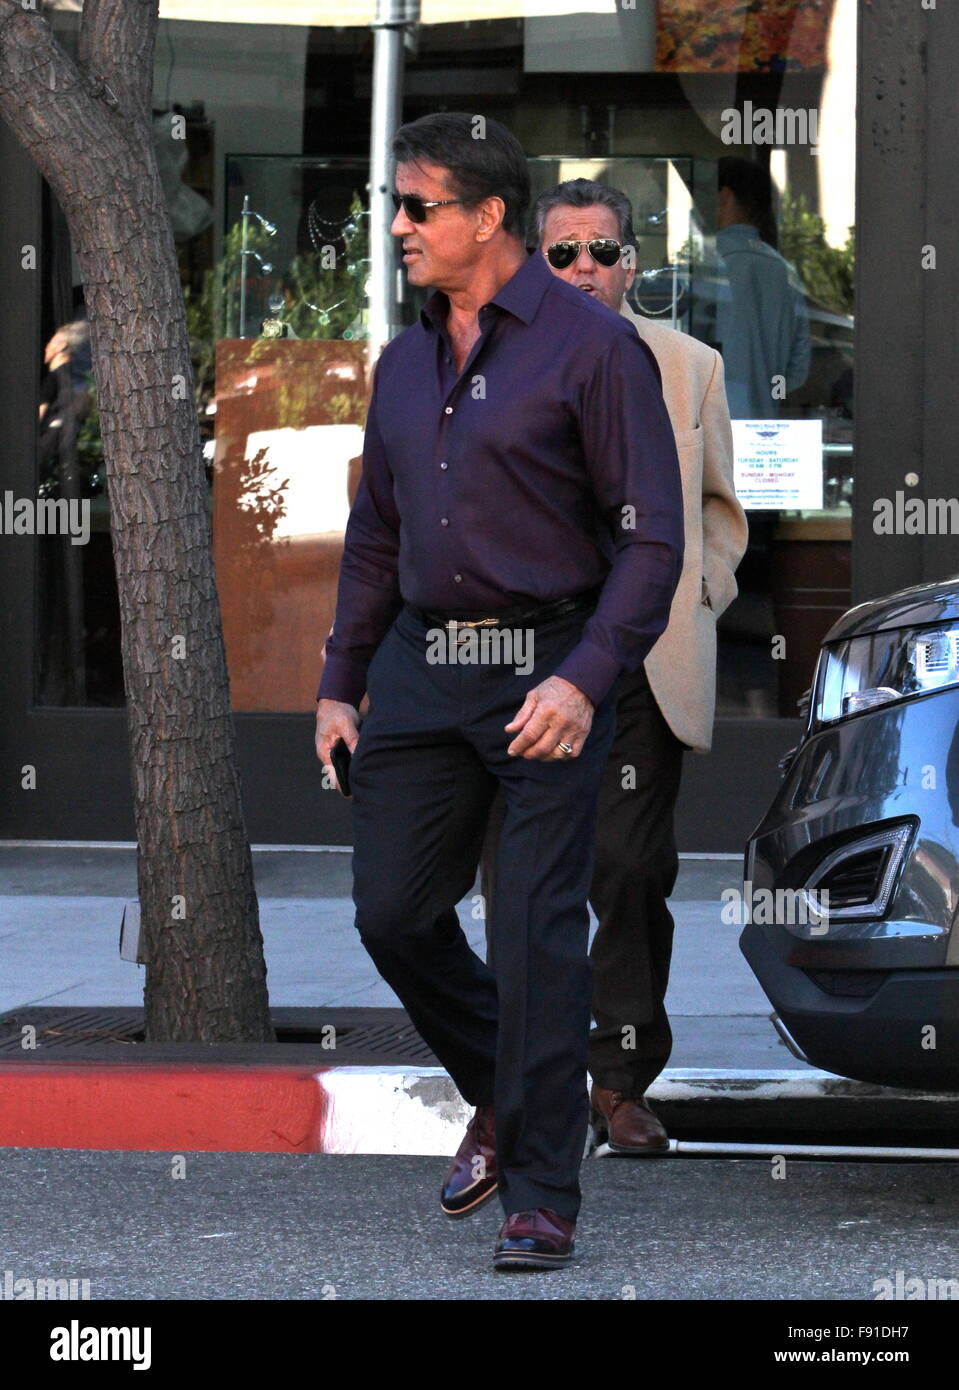 Beverly Hills, California, USA. 12th Dec, 2015. Sylvester Stallone Holiday Shops Beverly HIlls, CA, USA Credit: - Stock Image